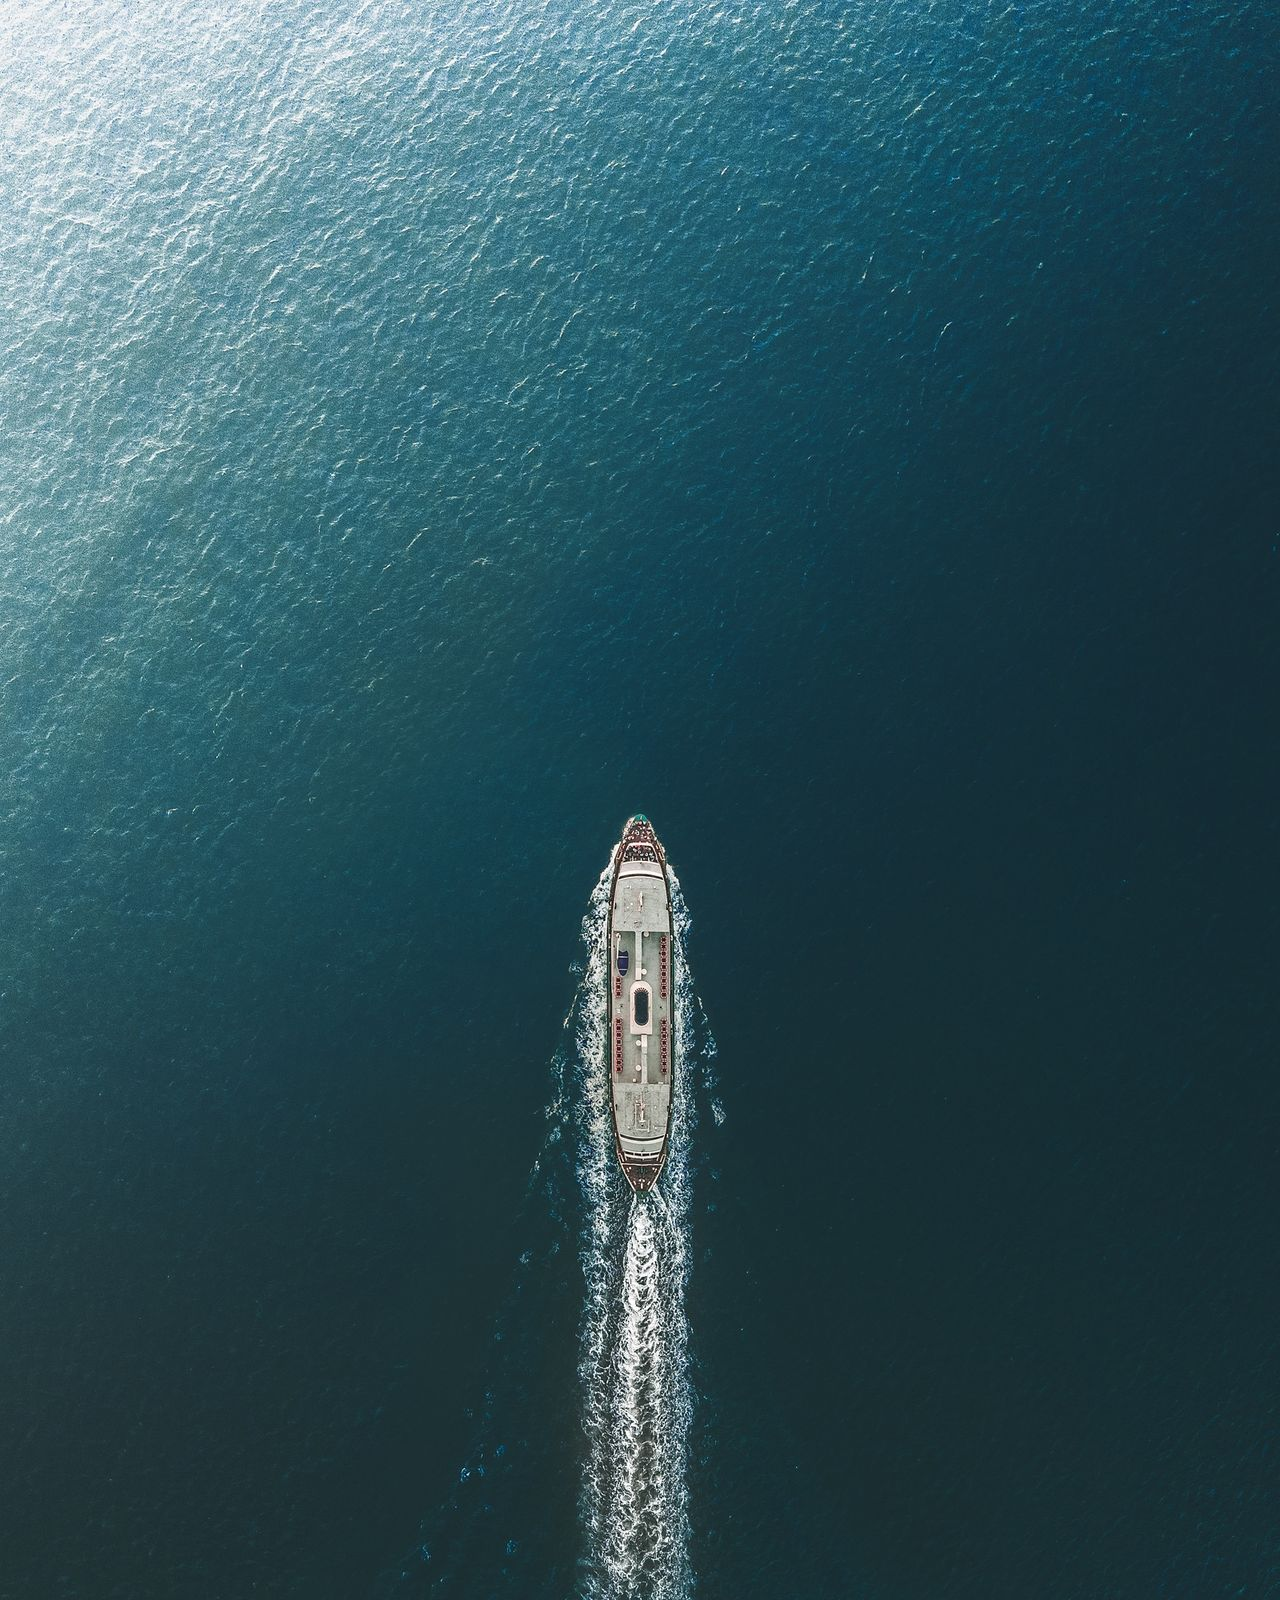 Focus on the journey not the destination. Drone  Aerial Photography Aerial View Nature Water Reflections Waterfront Looking Down From Above Travel Outdoors Minimal Calm Flying High